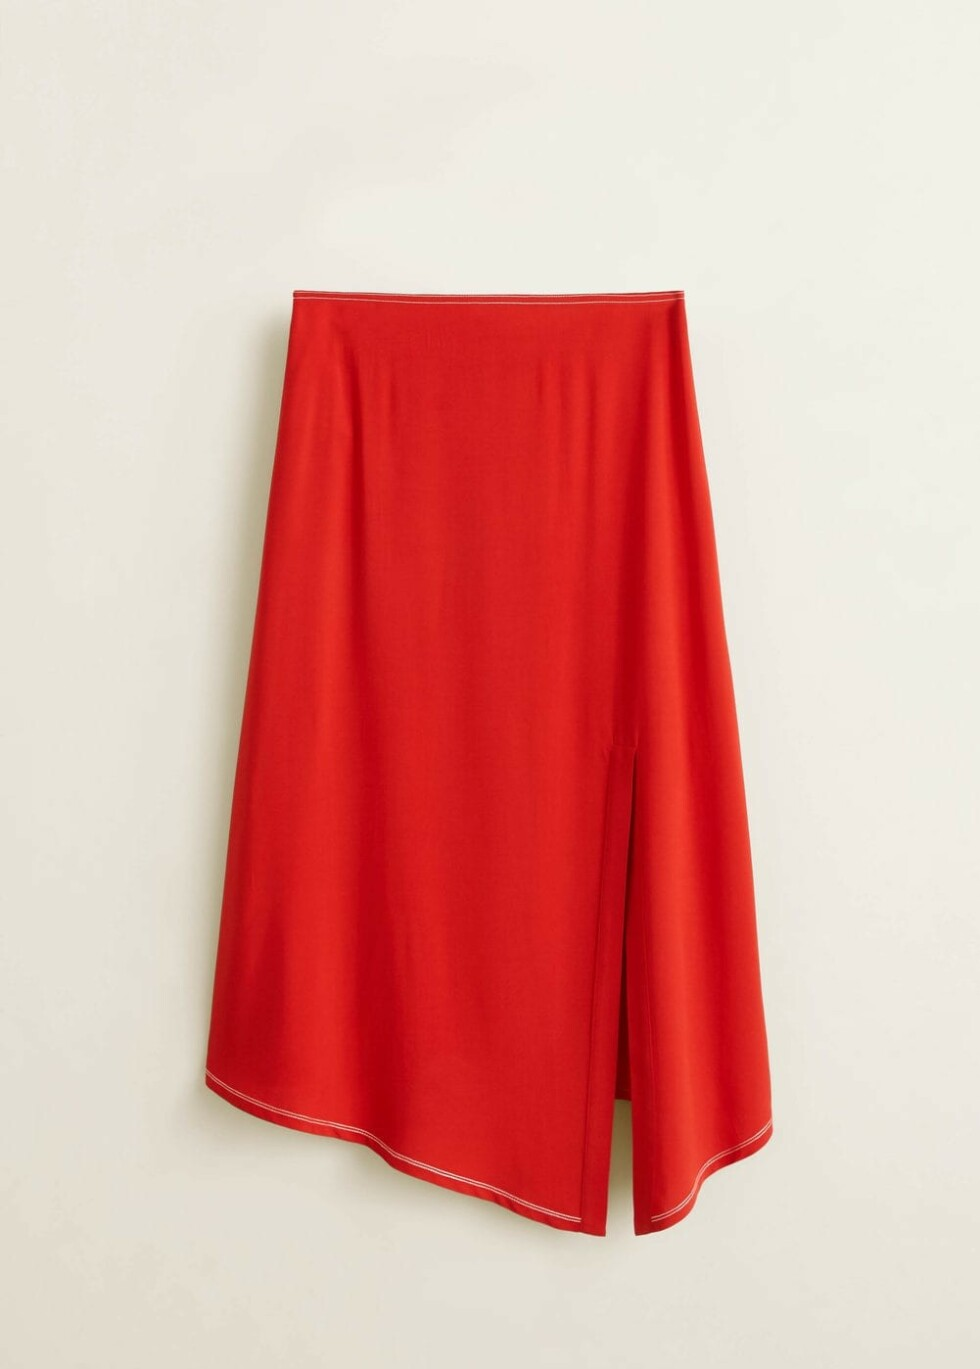 Skjørt fra Mango |449,-| https://shop.mango.com/no-en/women/skirts-midi/slit-hem-skirt_43050780.html?c=70&n=1&s=search